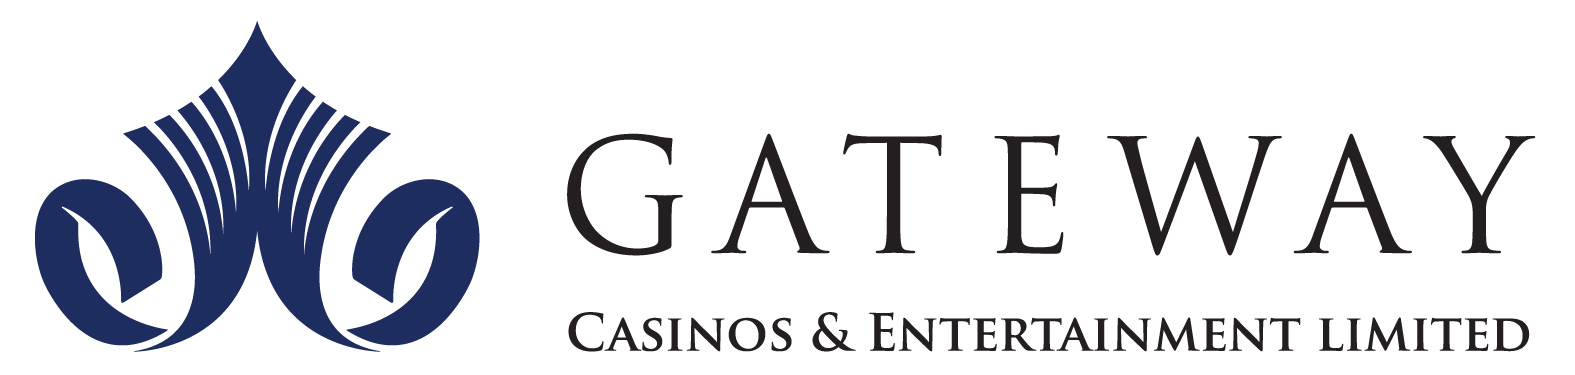 gateways casino